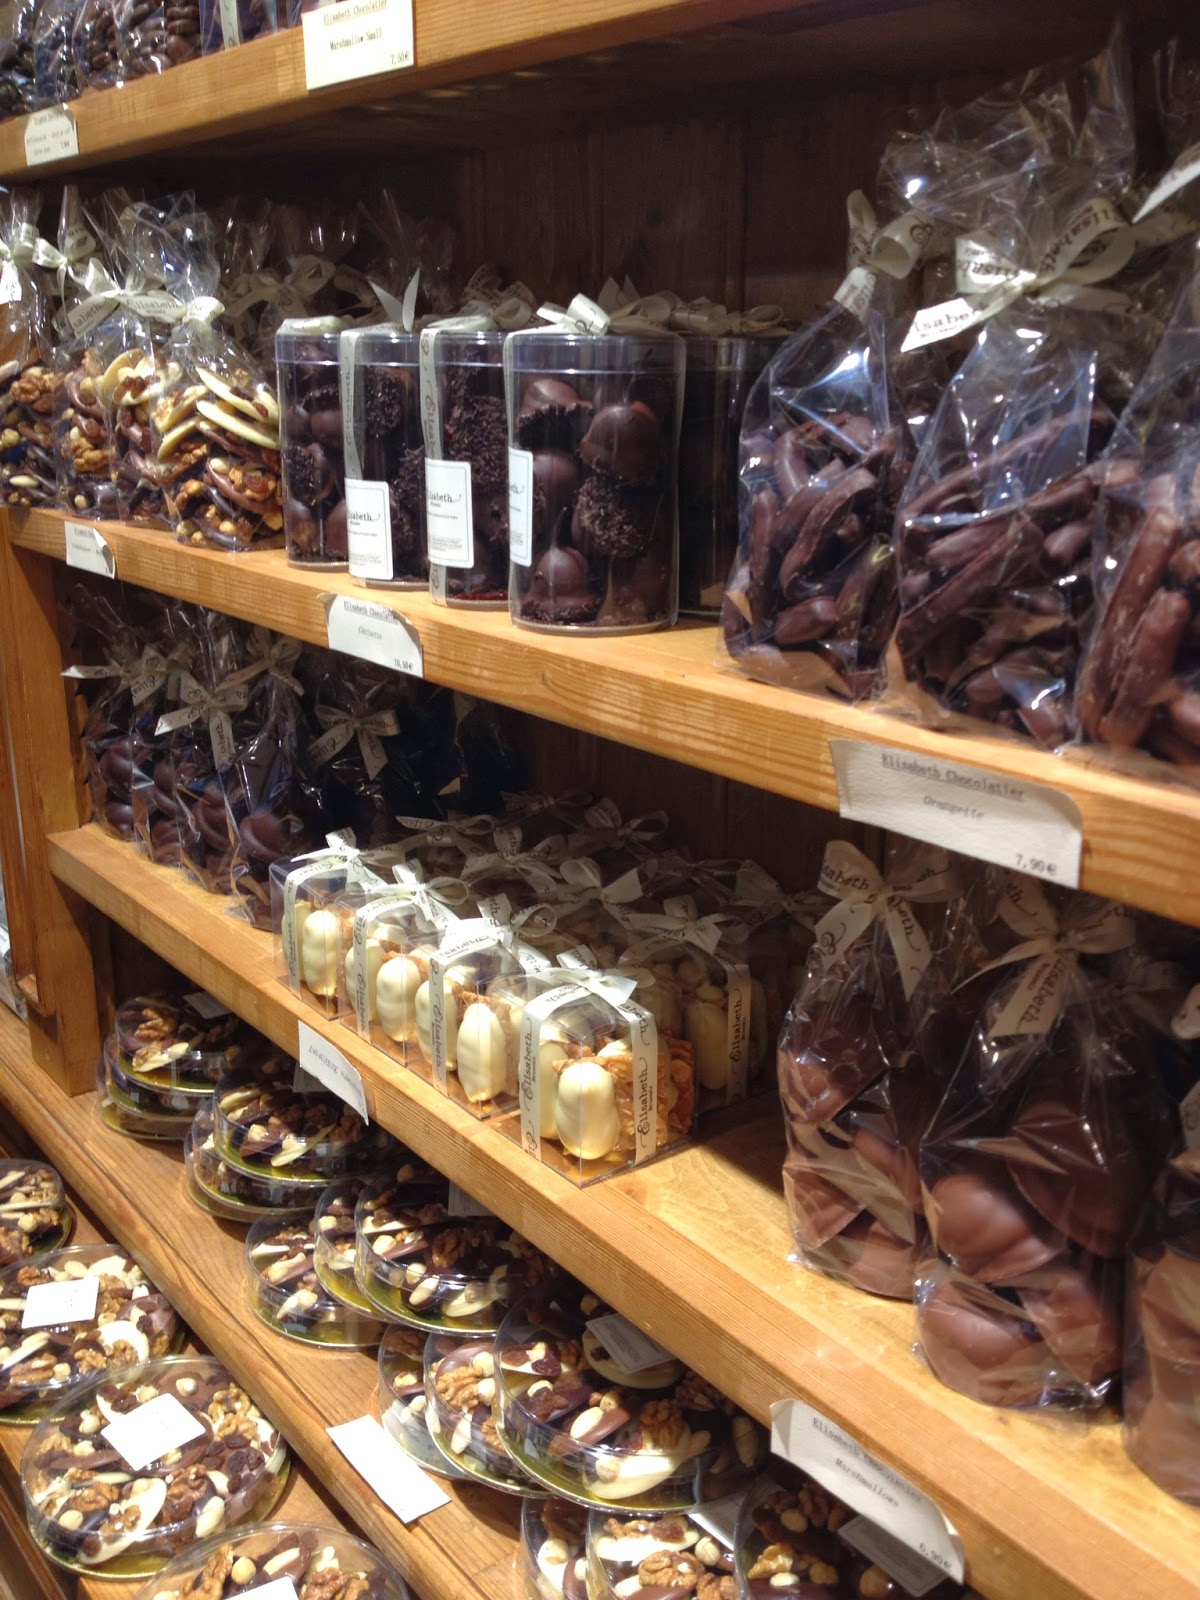 Brussels - Some of the chocolate looks too beautiful to eat